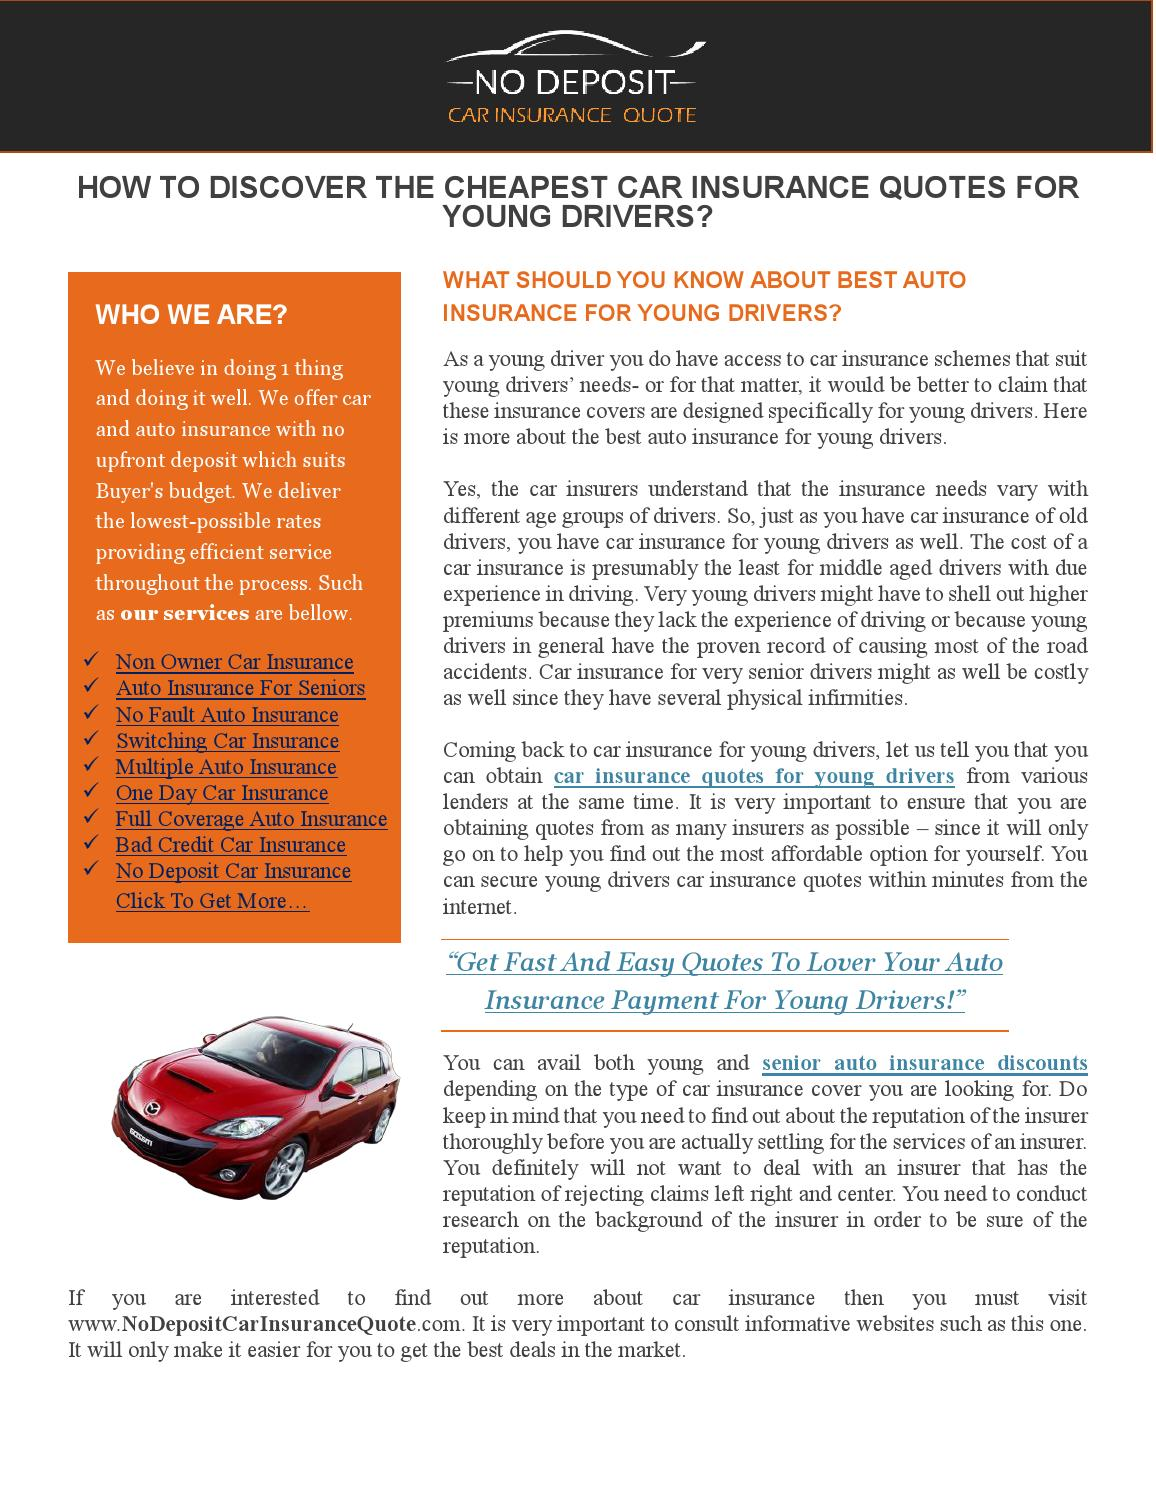 How To Discover The Cheapest Car Insurance Quotes For Young Drivers